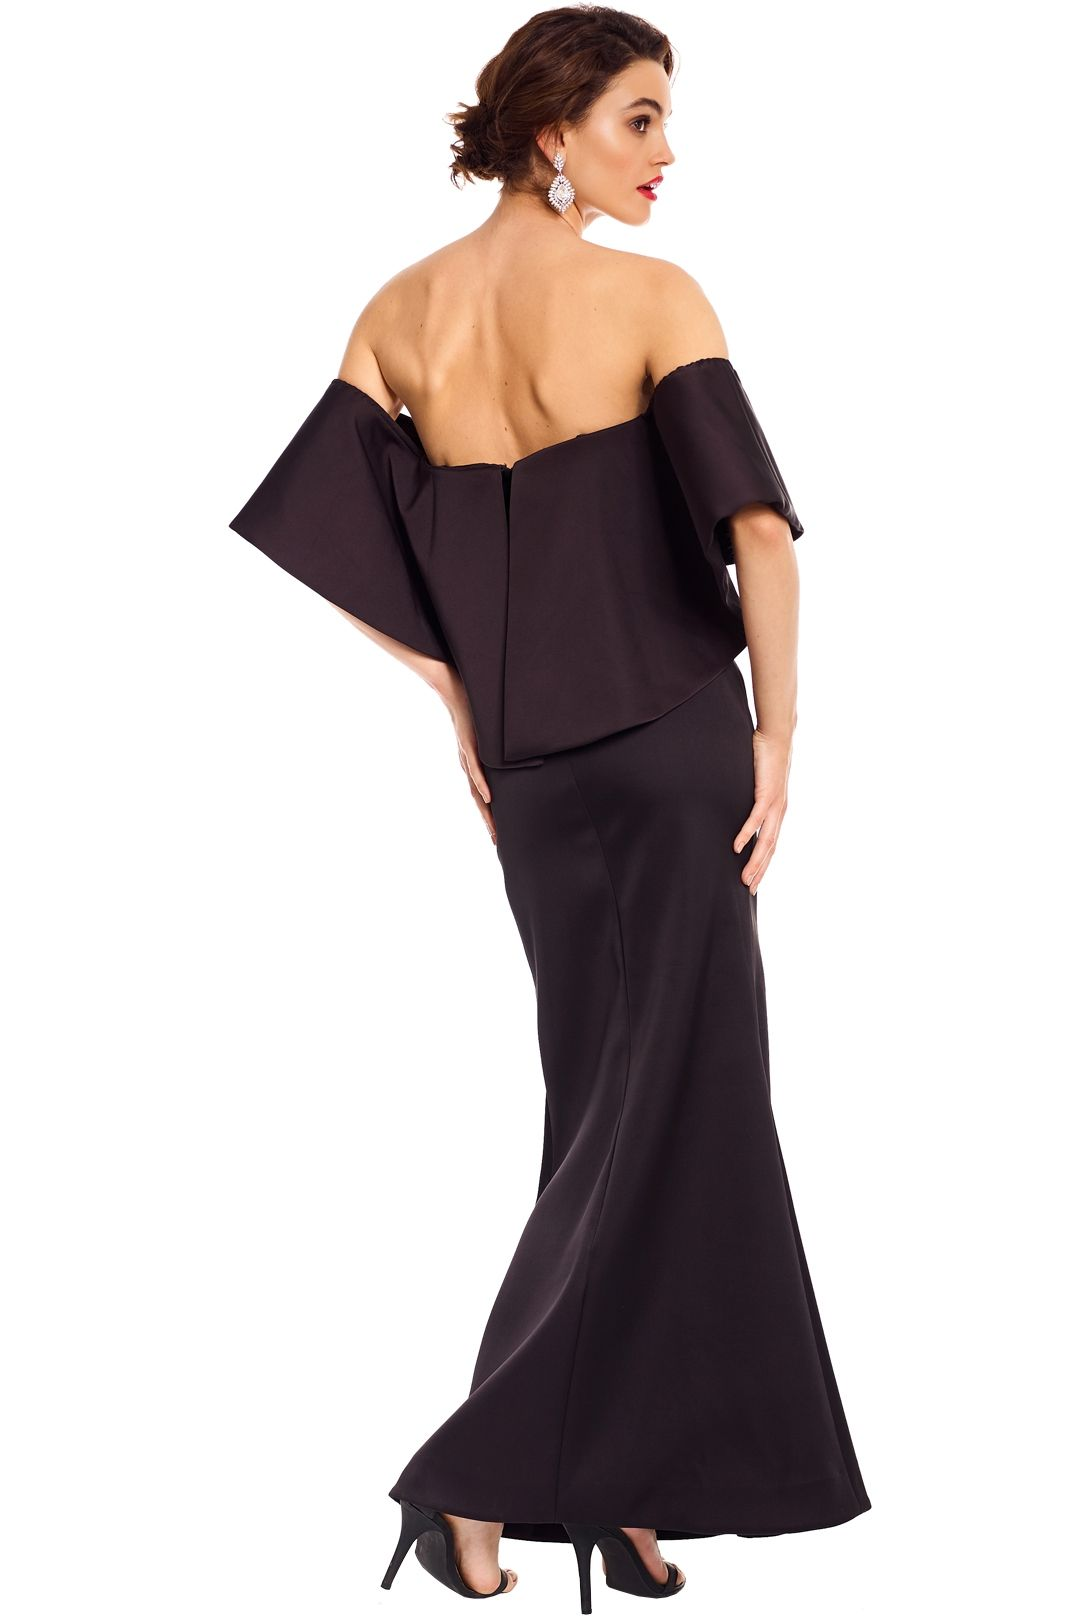 Talulah - Without You Gown - Black - Back